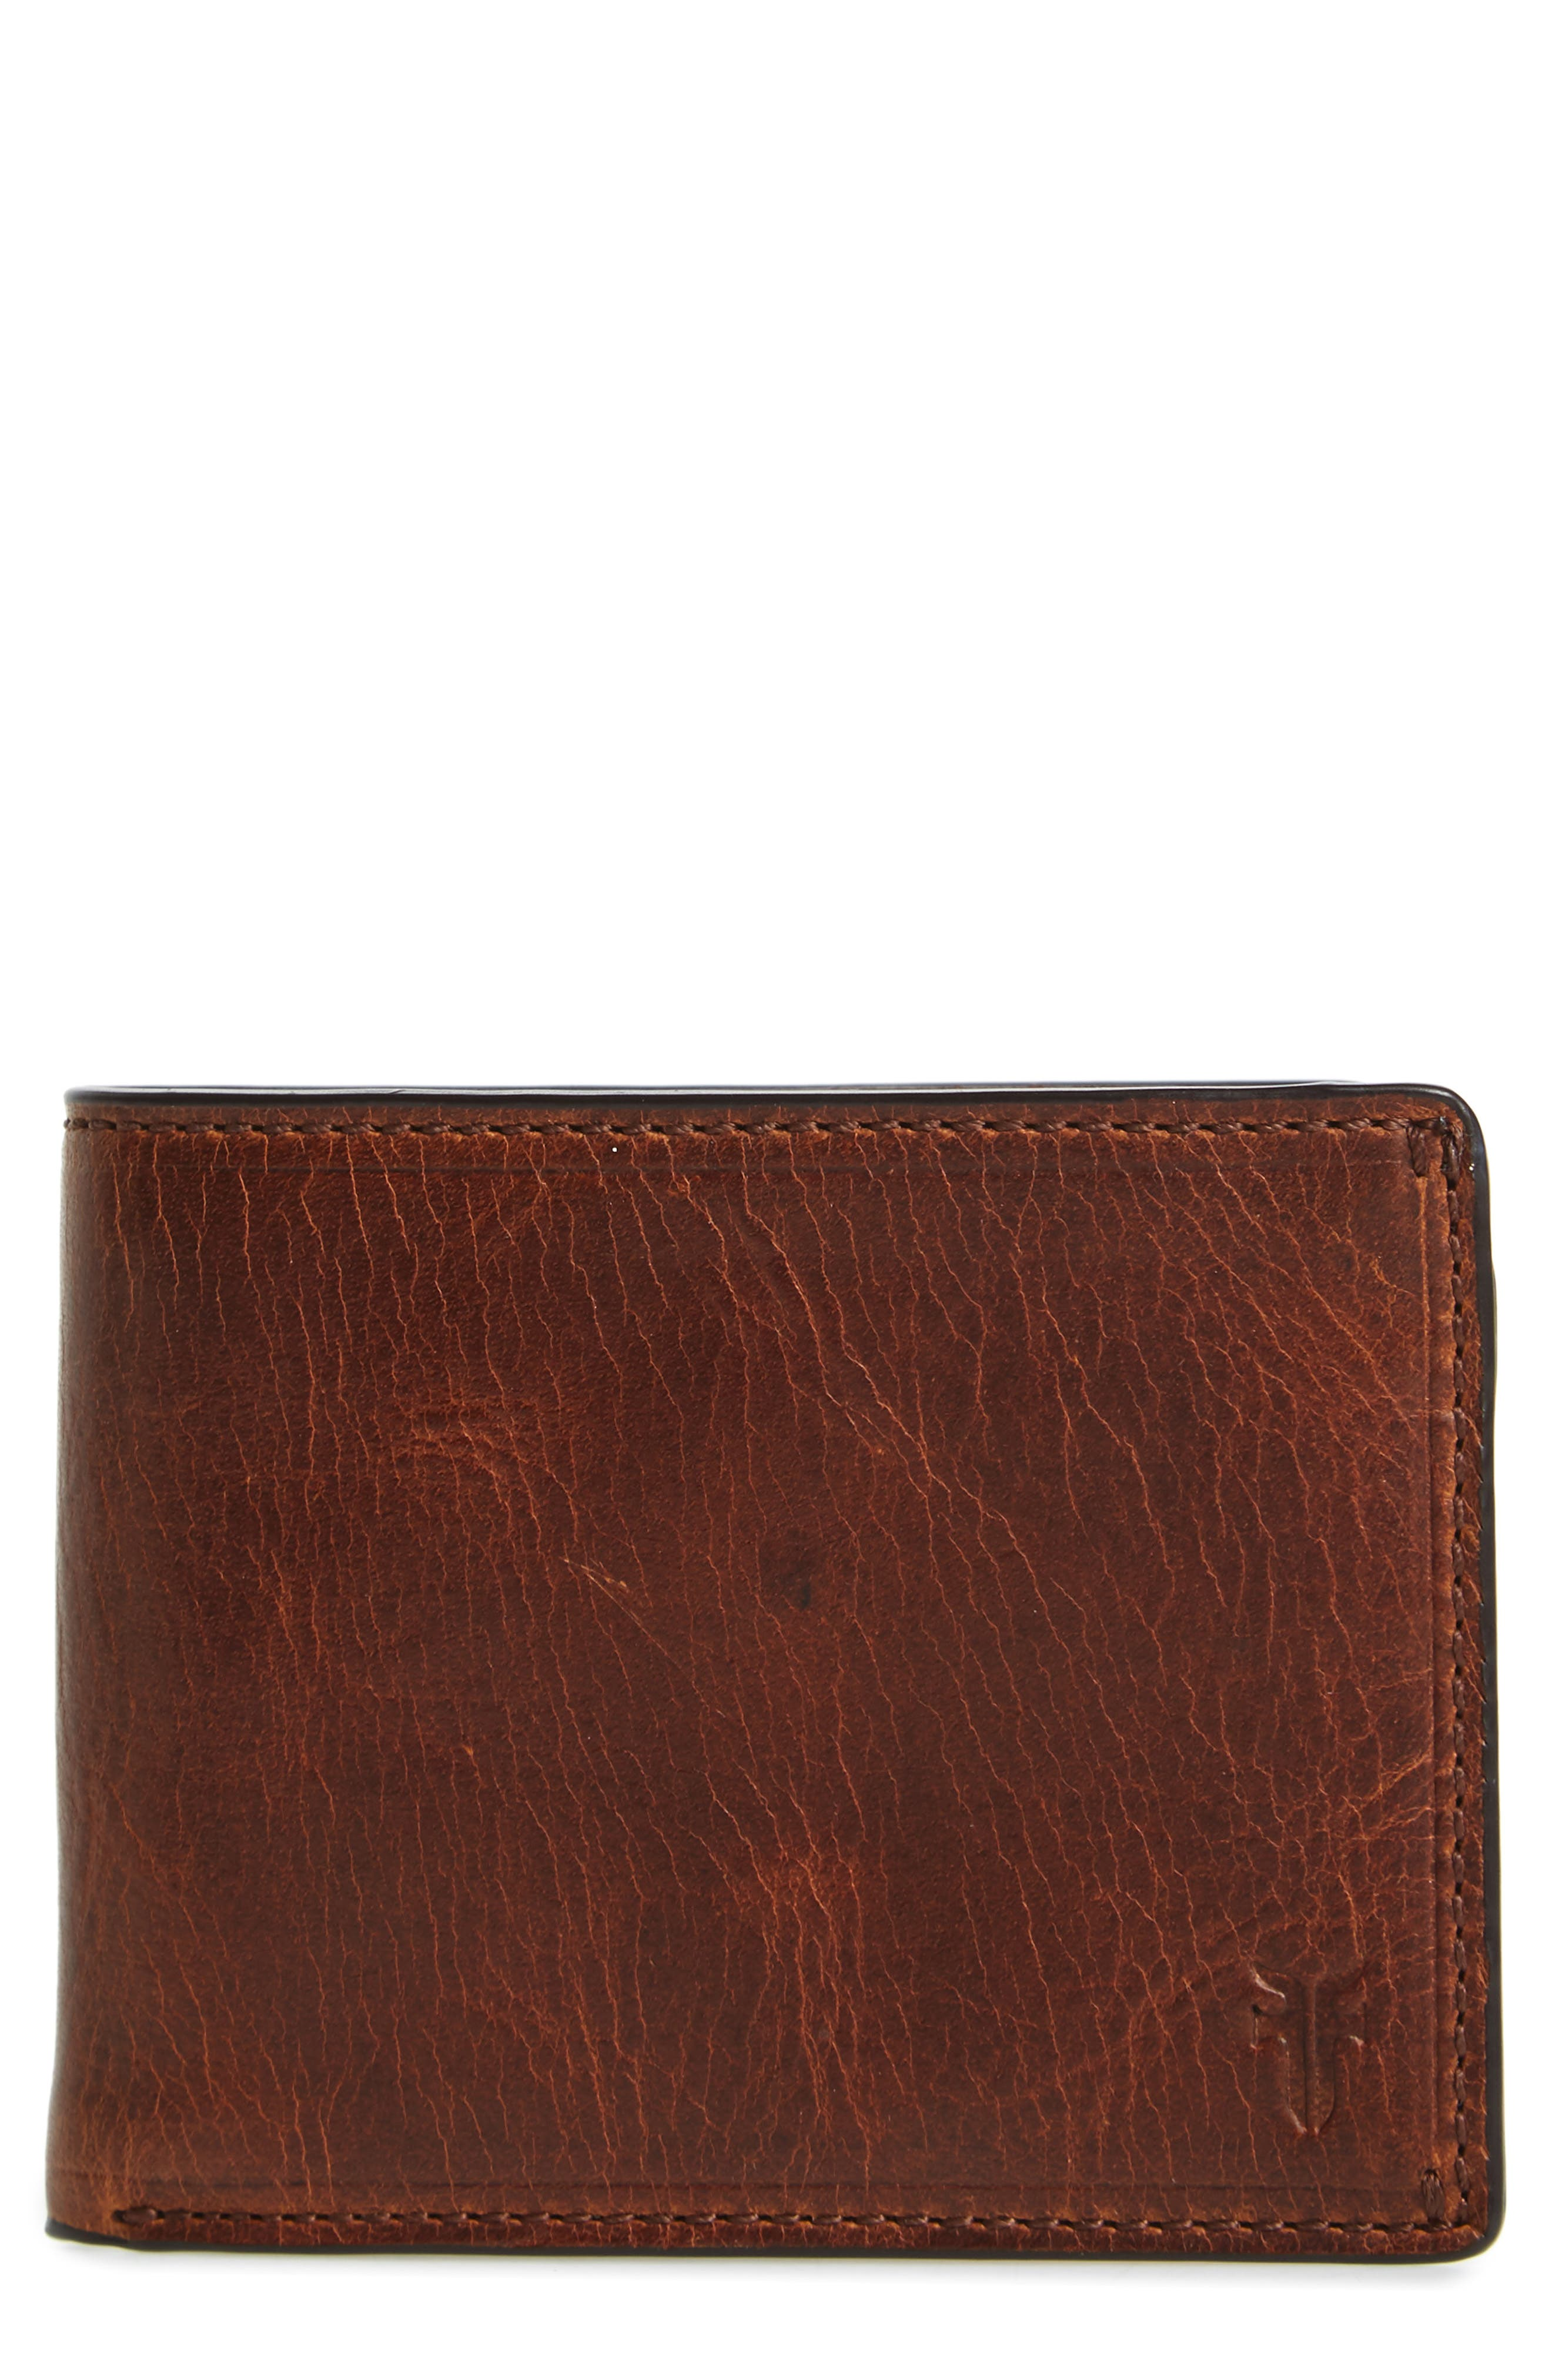 FRYE Logan Leather Wallet, Main, color, COGNAC